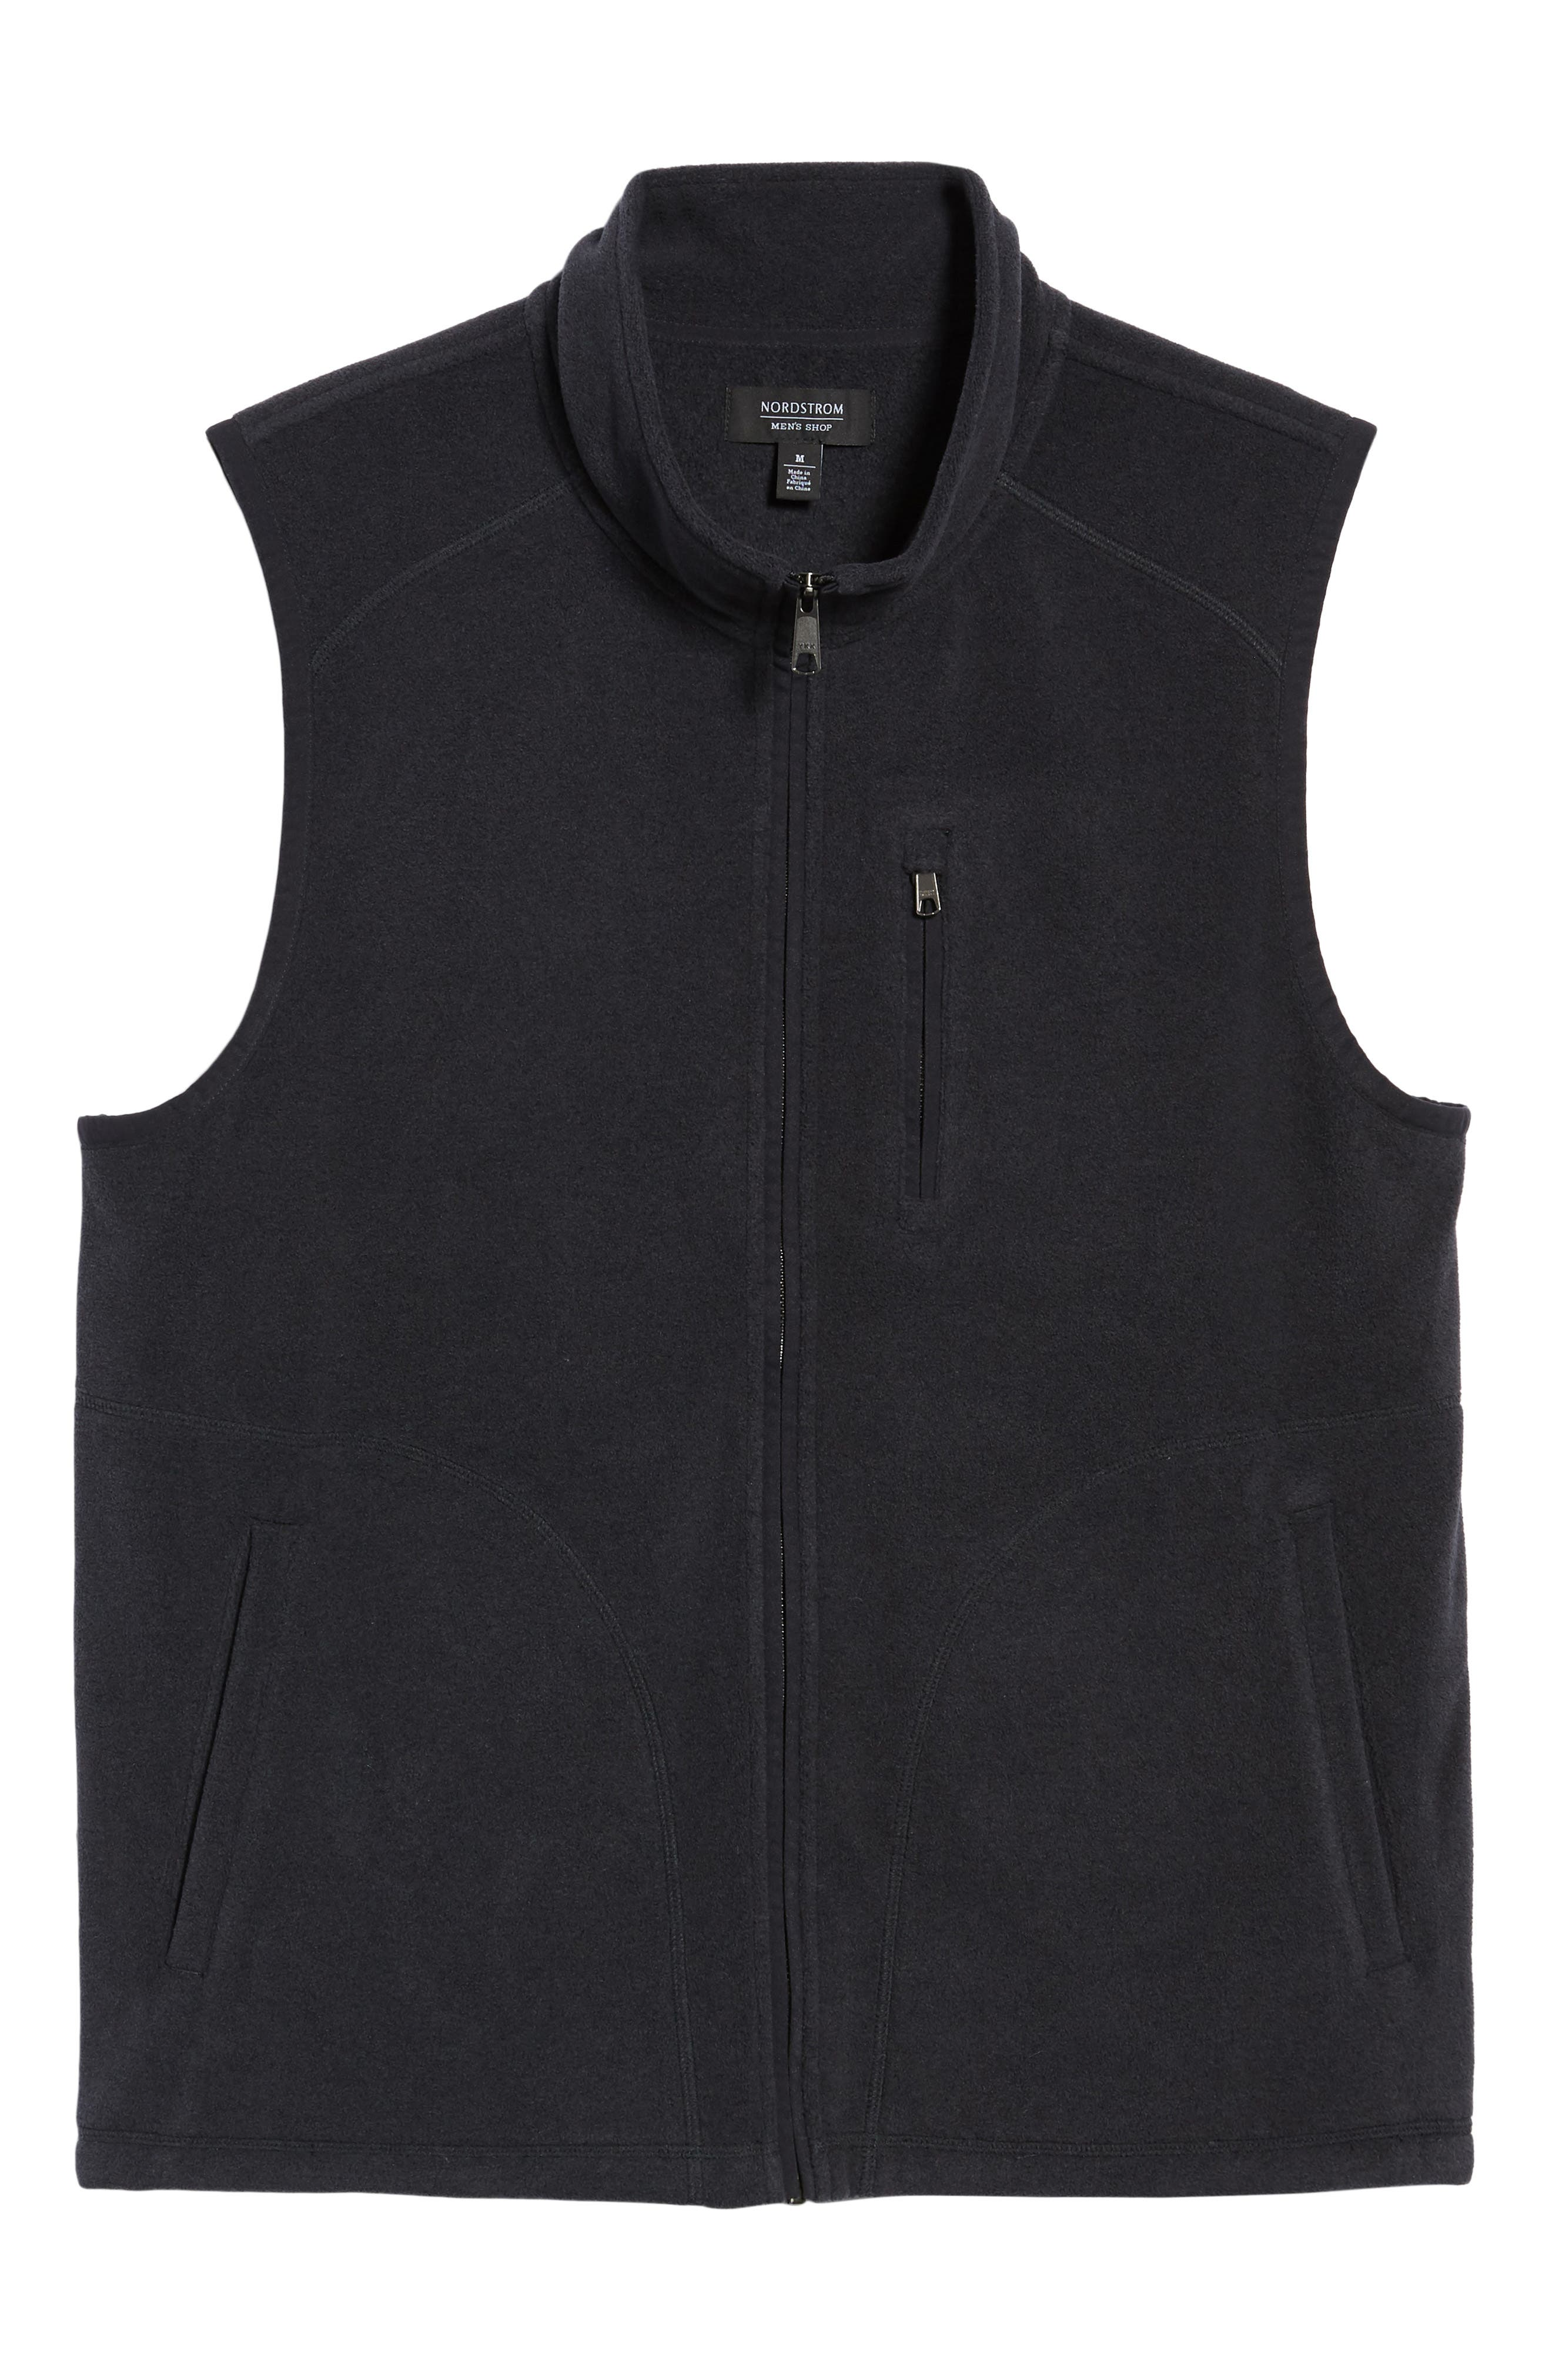 Polar Fleece Vest,                             Alternate thumbnail 6, color,                             001